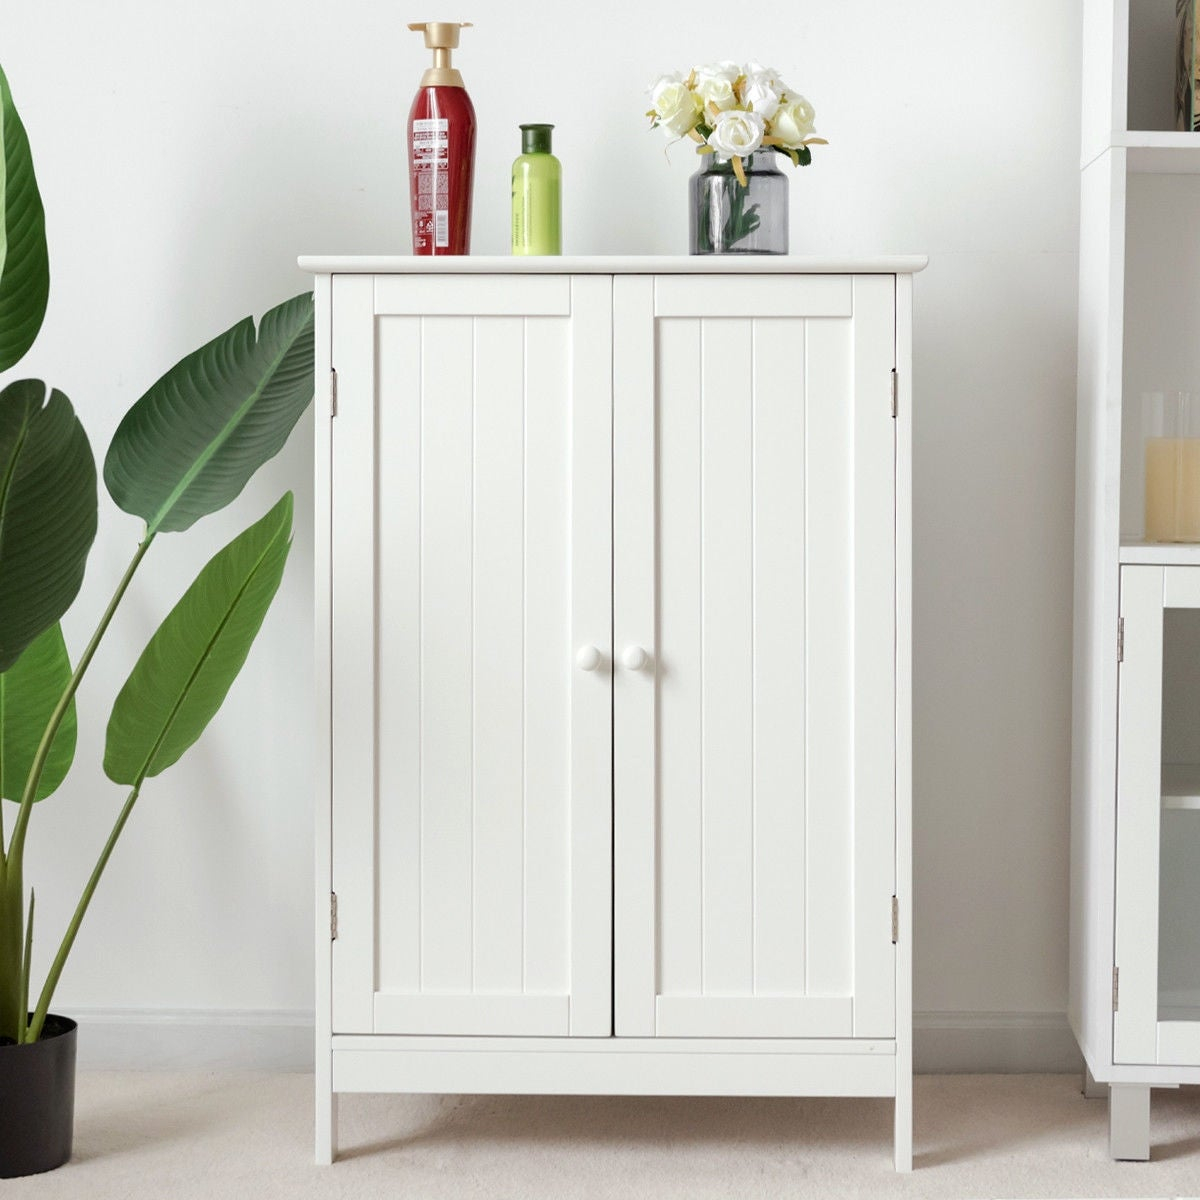 Gymax Bathroom Floor Storage Cabinet Double Door Kitchen Cupboard Shoe Cabinet White with regard to sizing 1200 X 1200